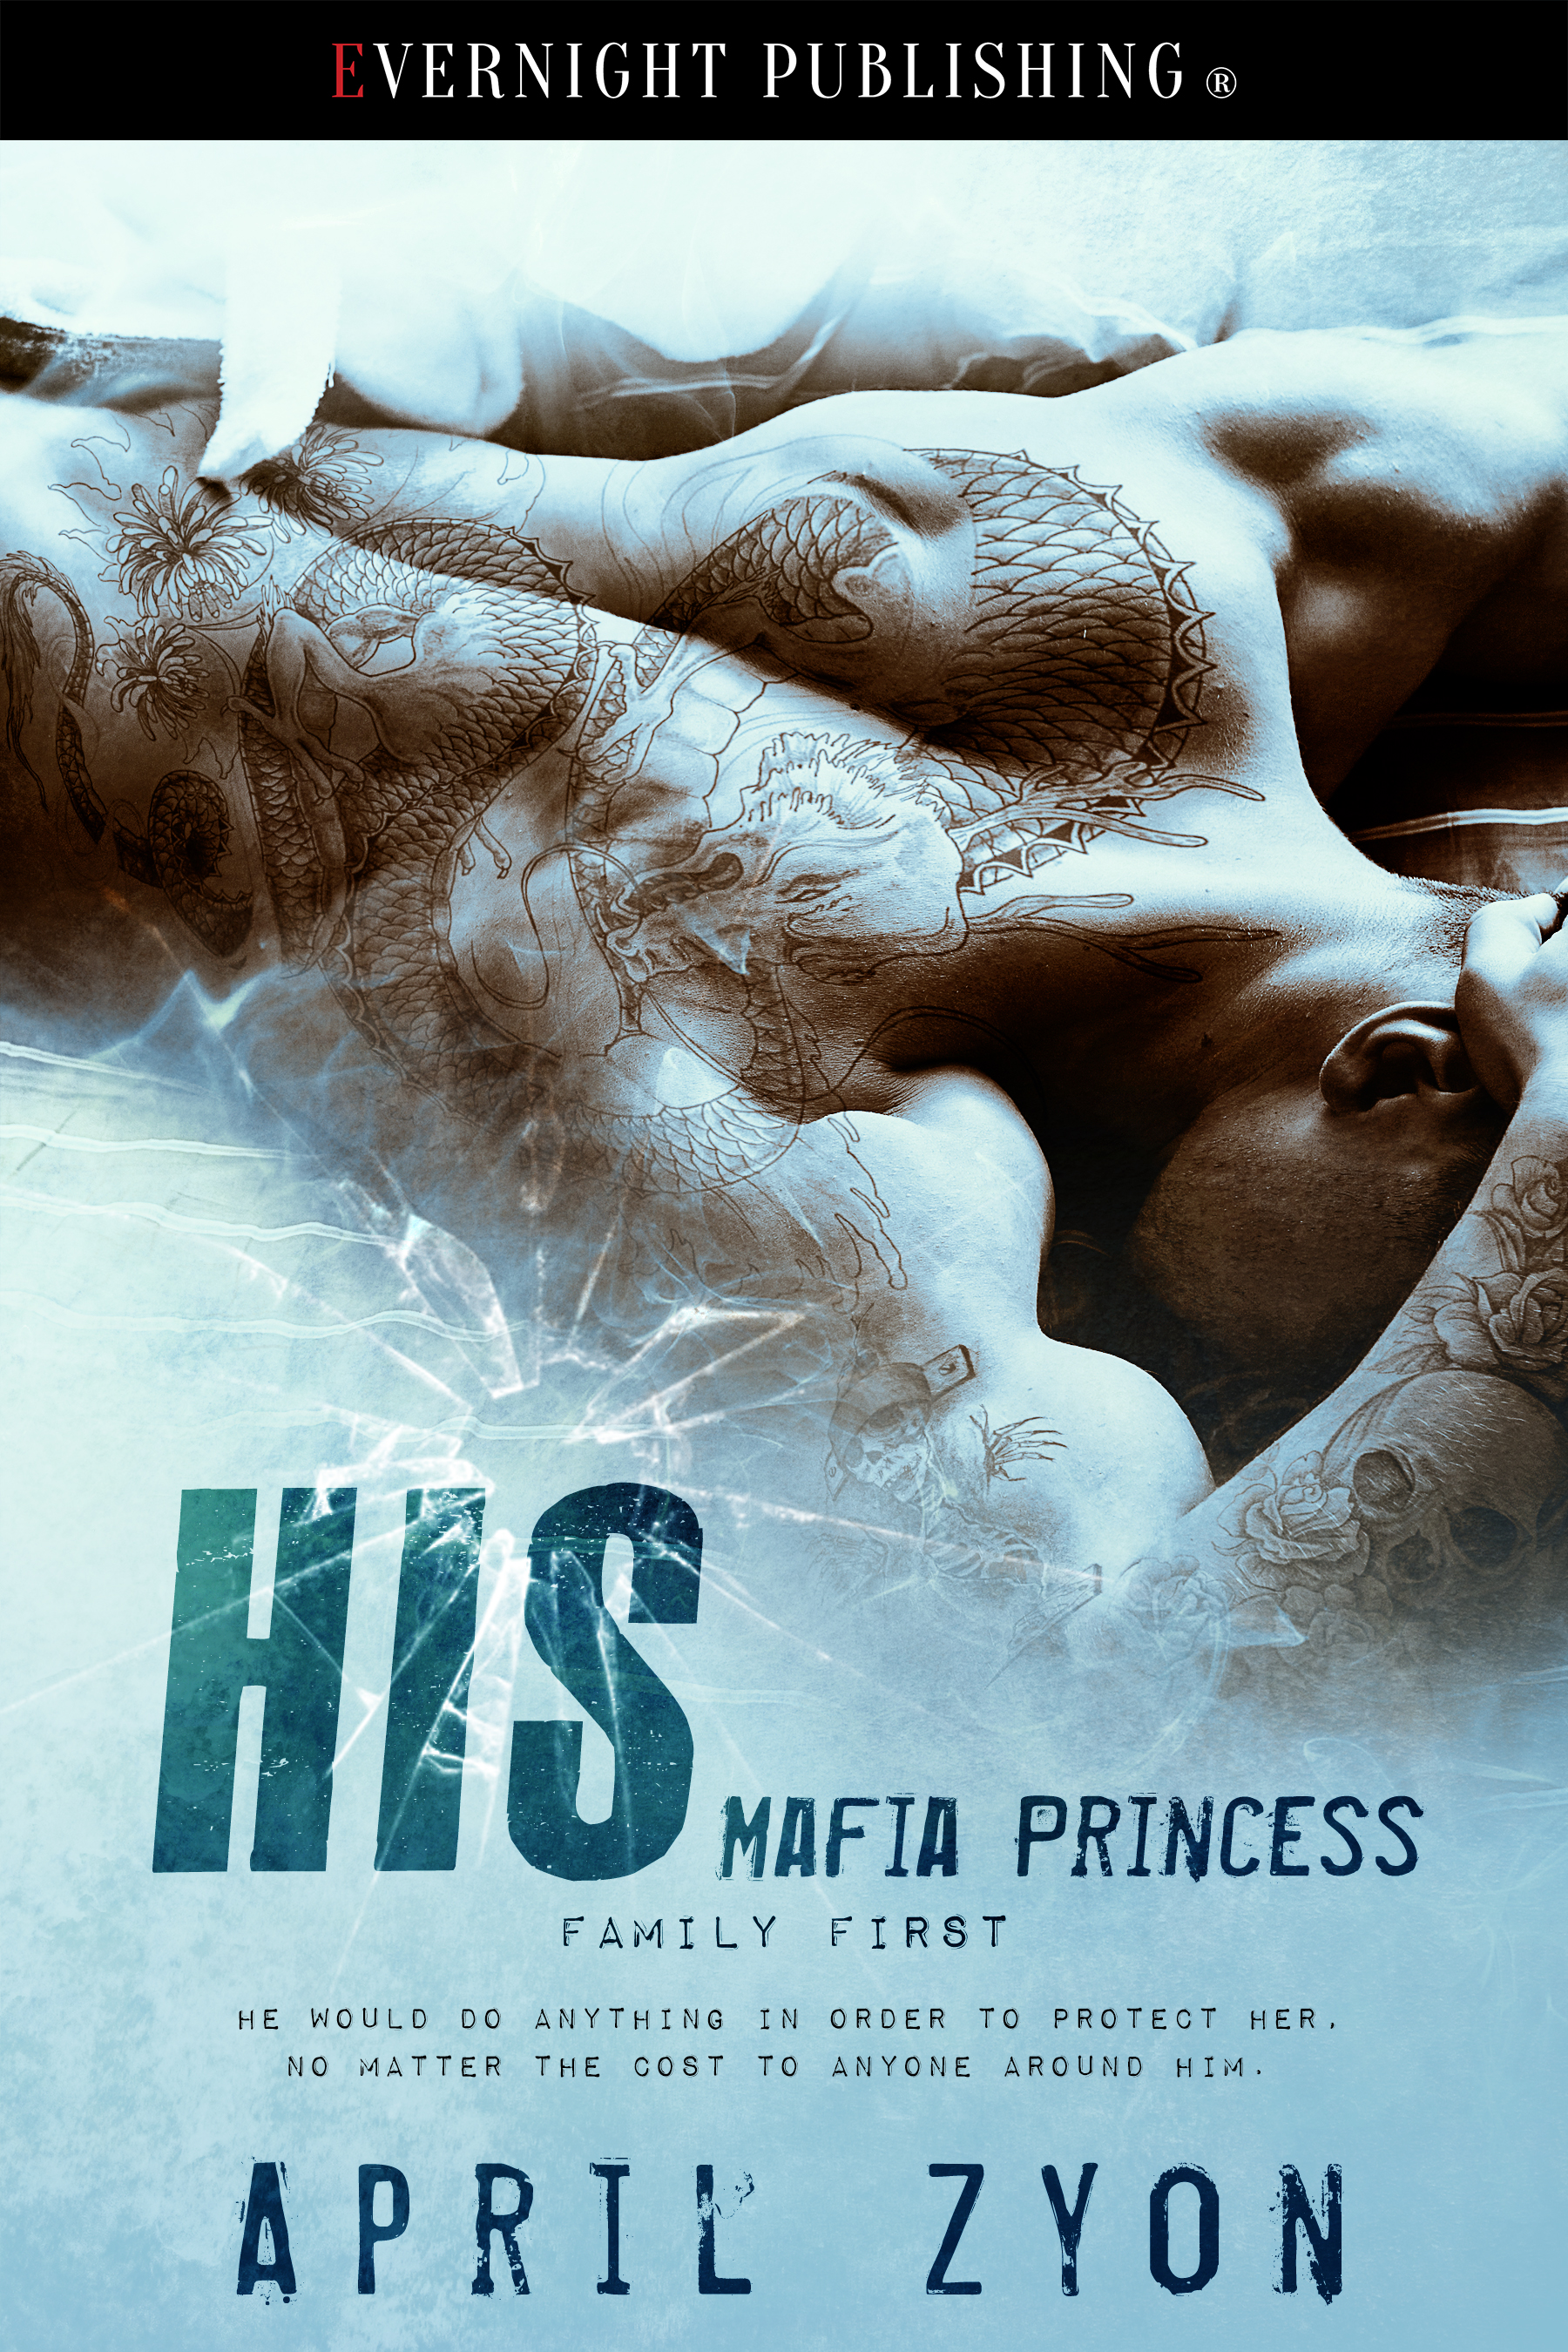 His-Mafia-Princess-evernightpublishing-2016-finalimage